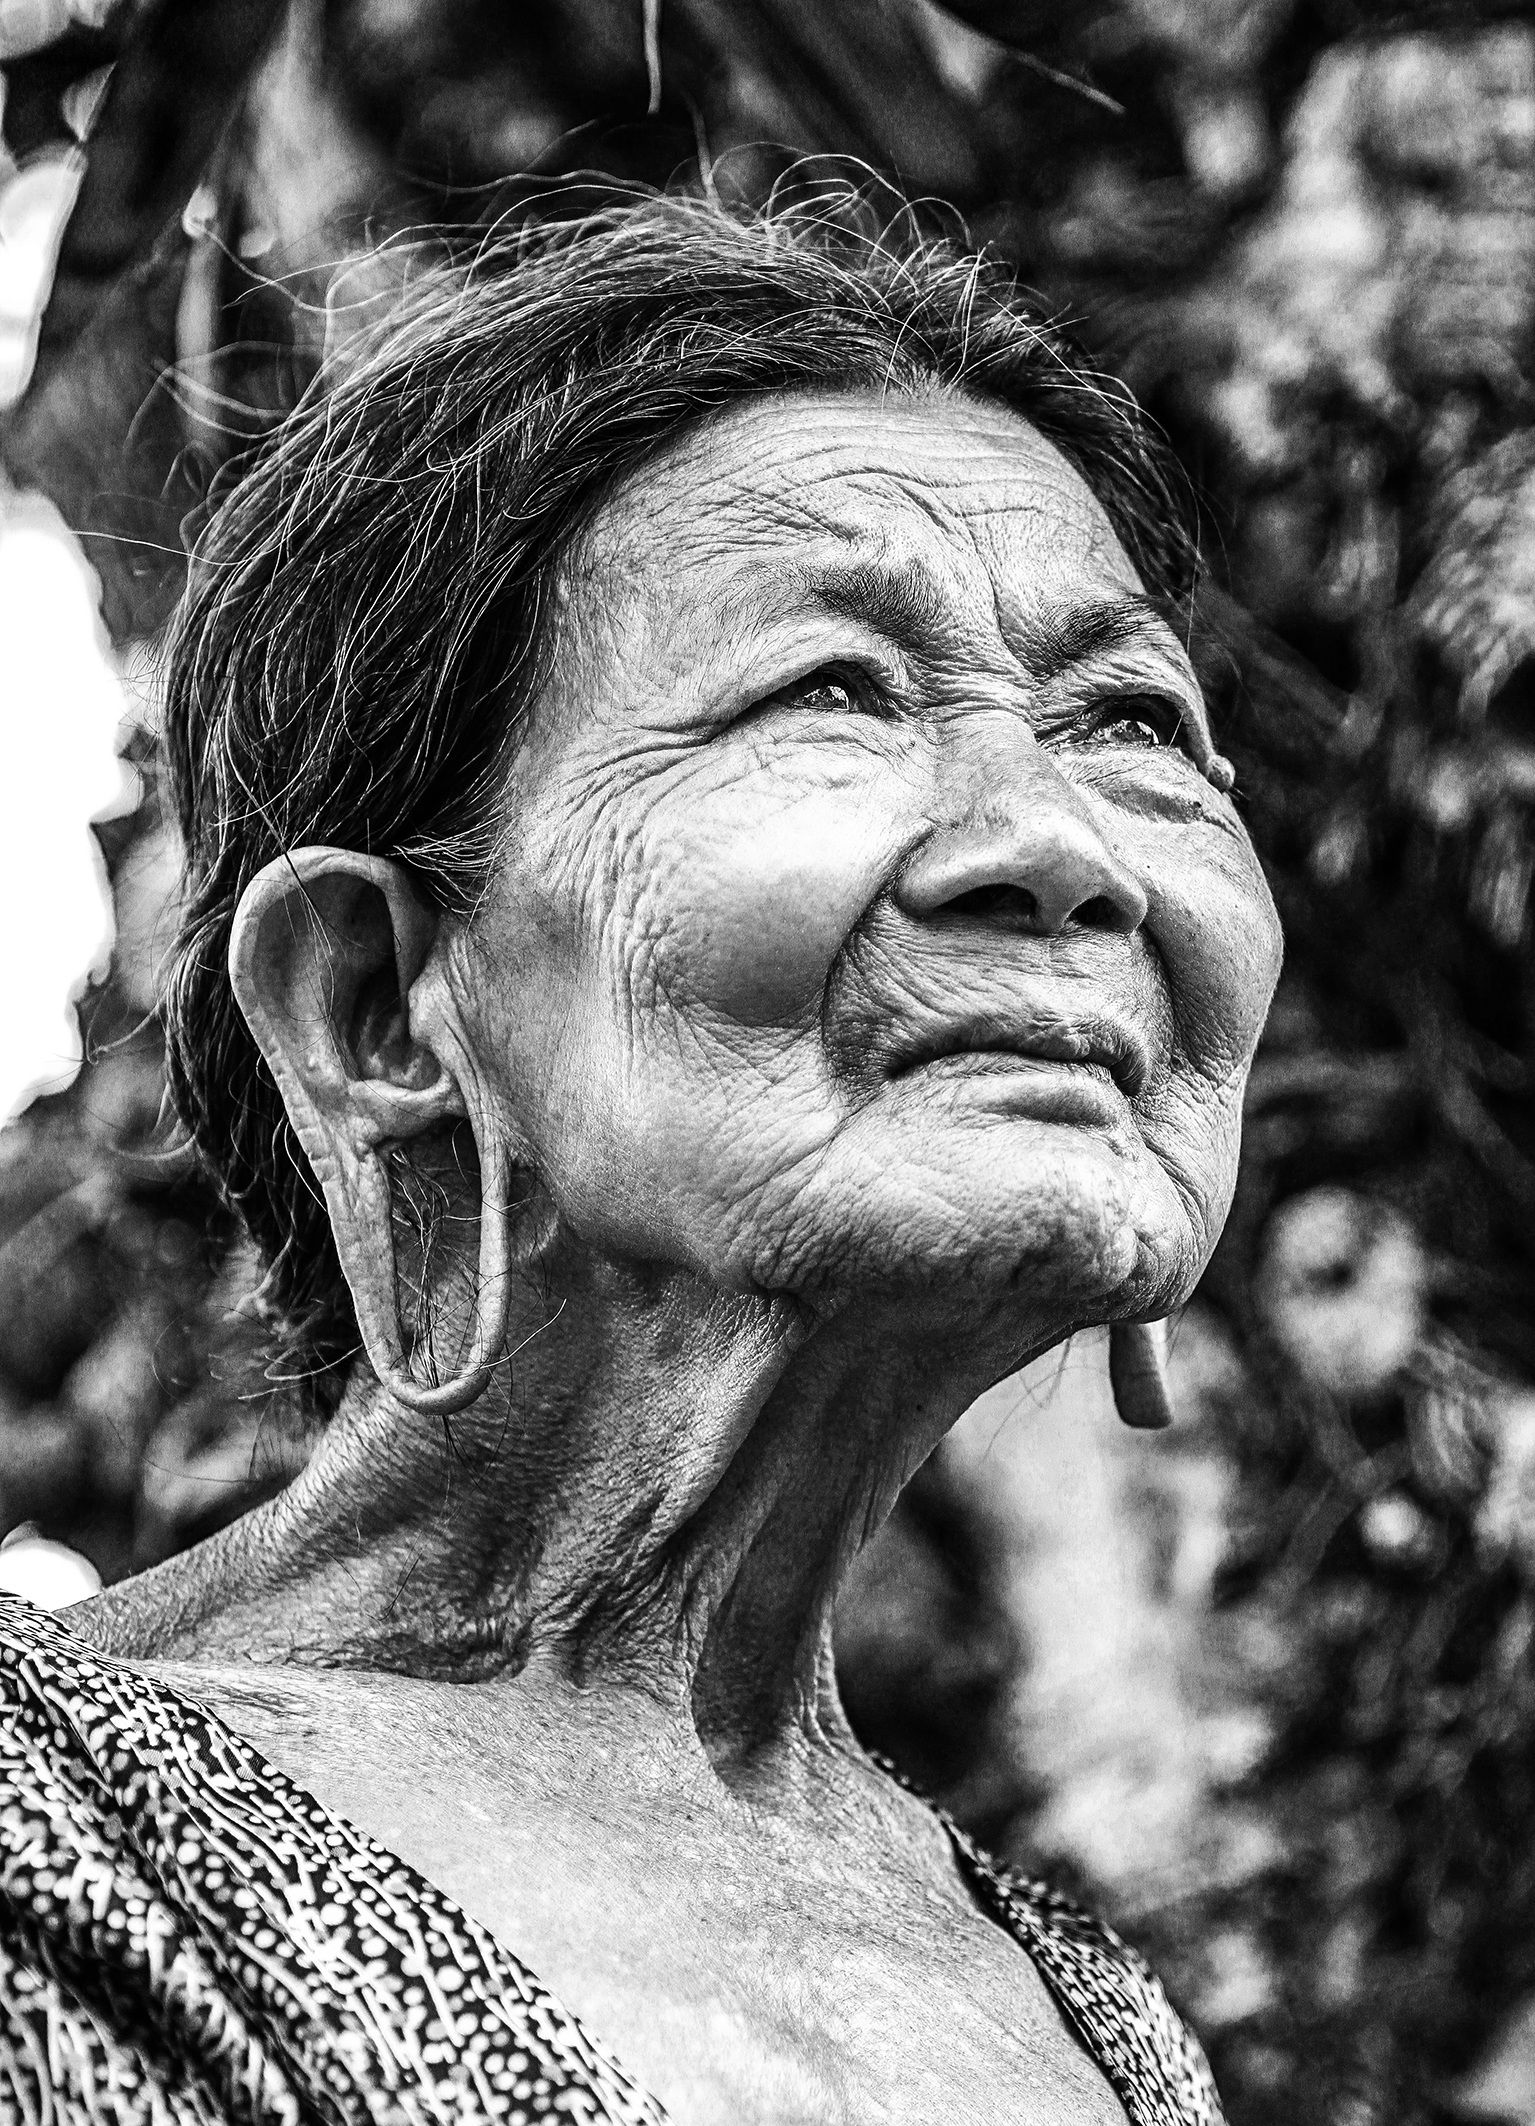 old-woman-portrait-vietnam-three-tamarind-m-nong-157611.jpeg